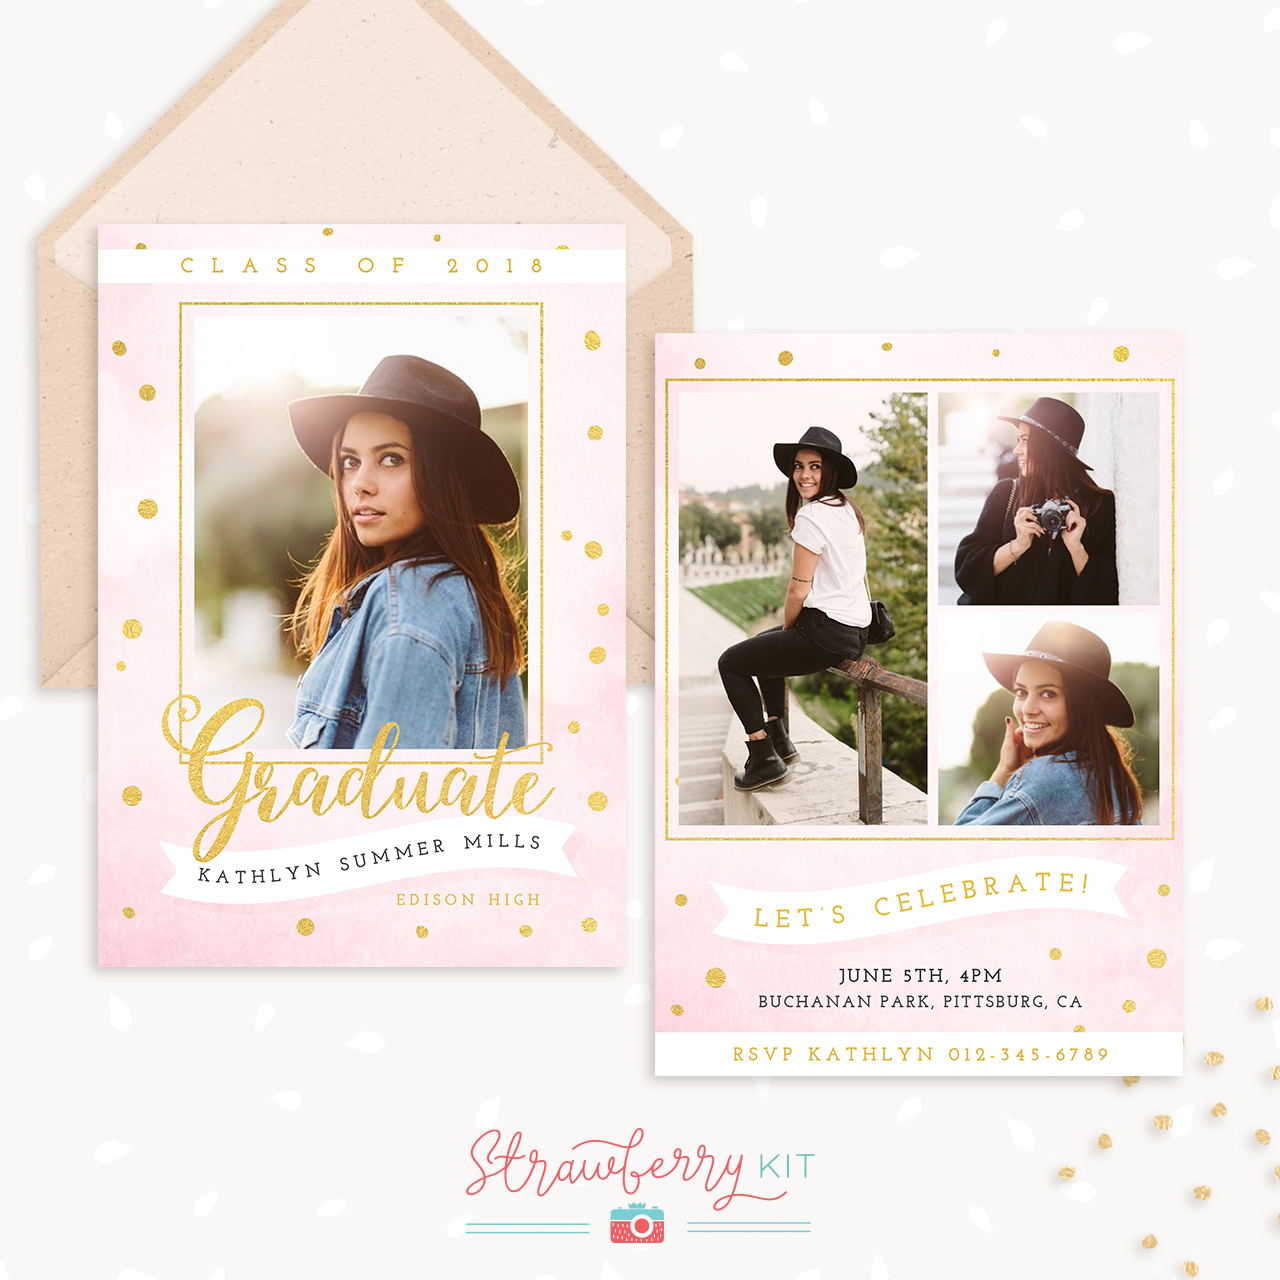 Graduation Announcement Template Pink Gold Strawberry Kit